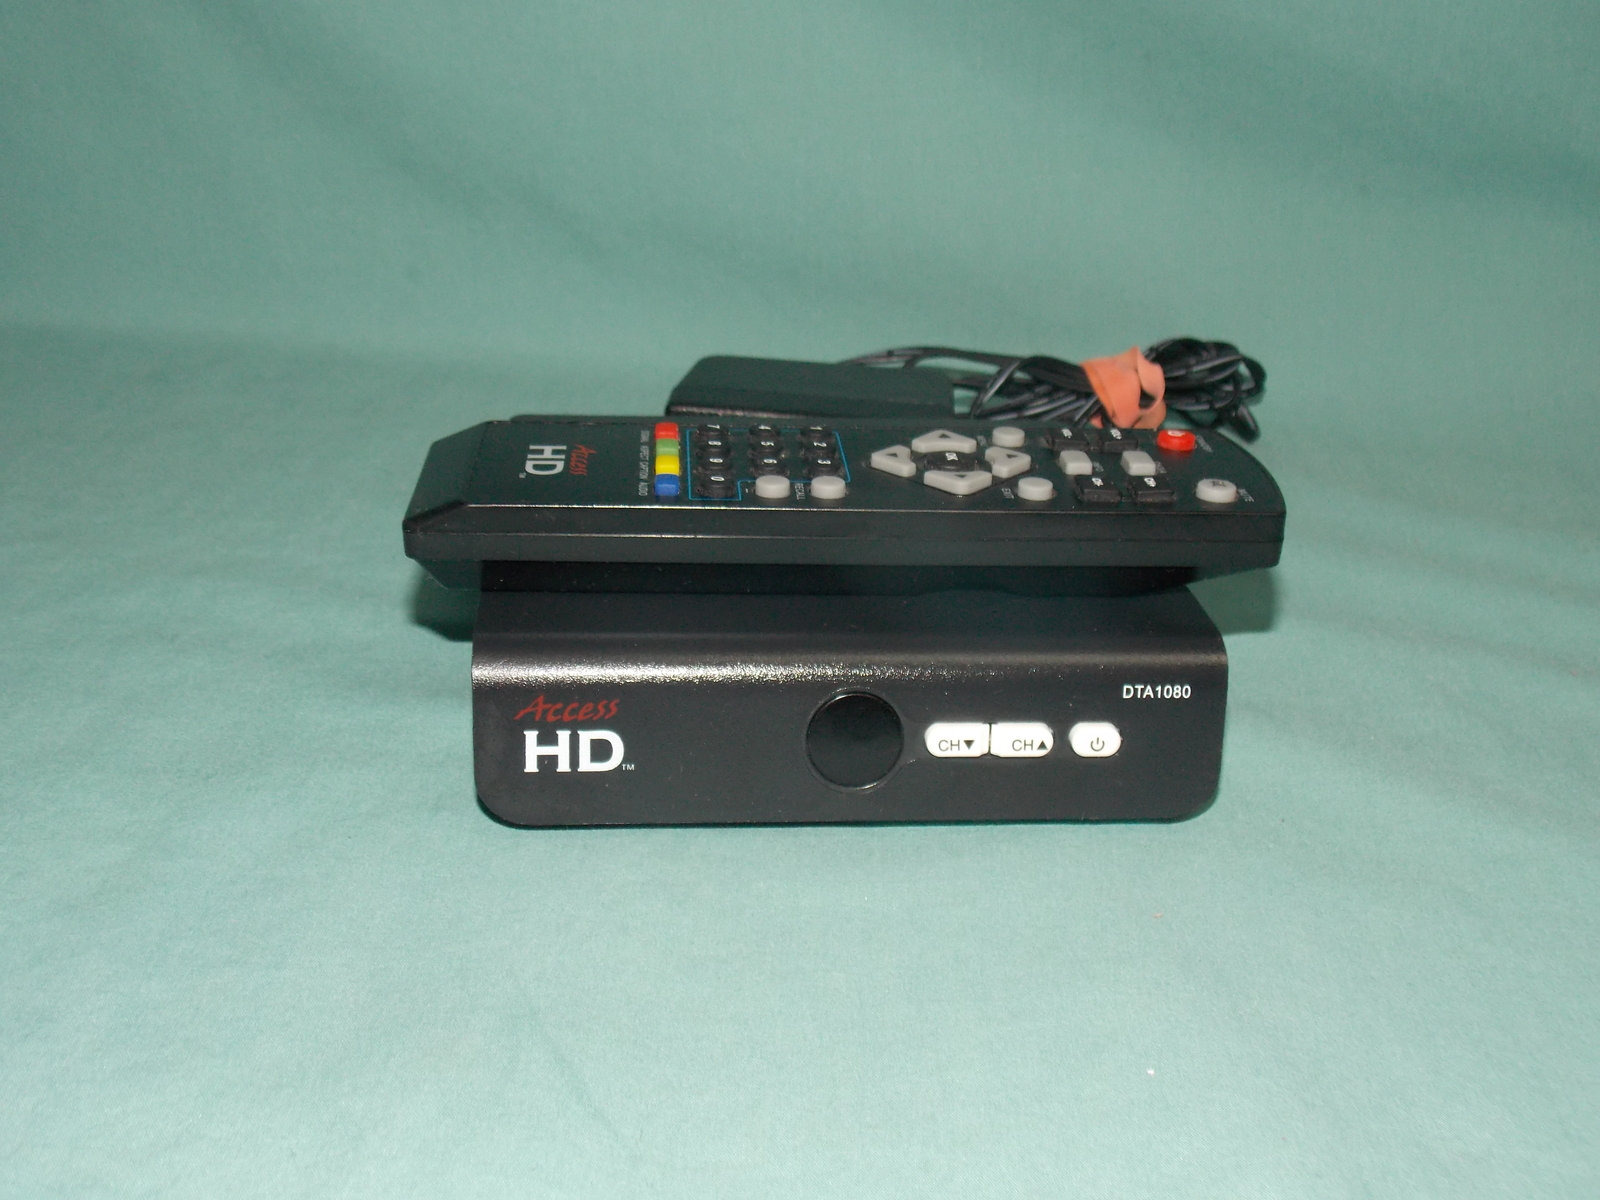 Access hd dta1080 universal remote code